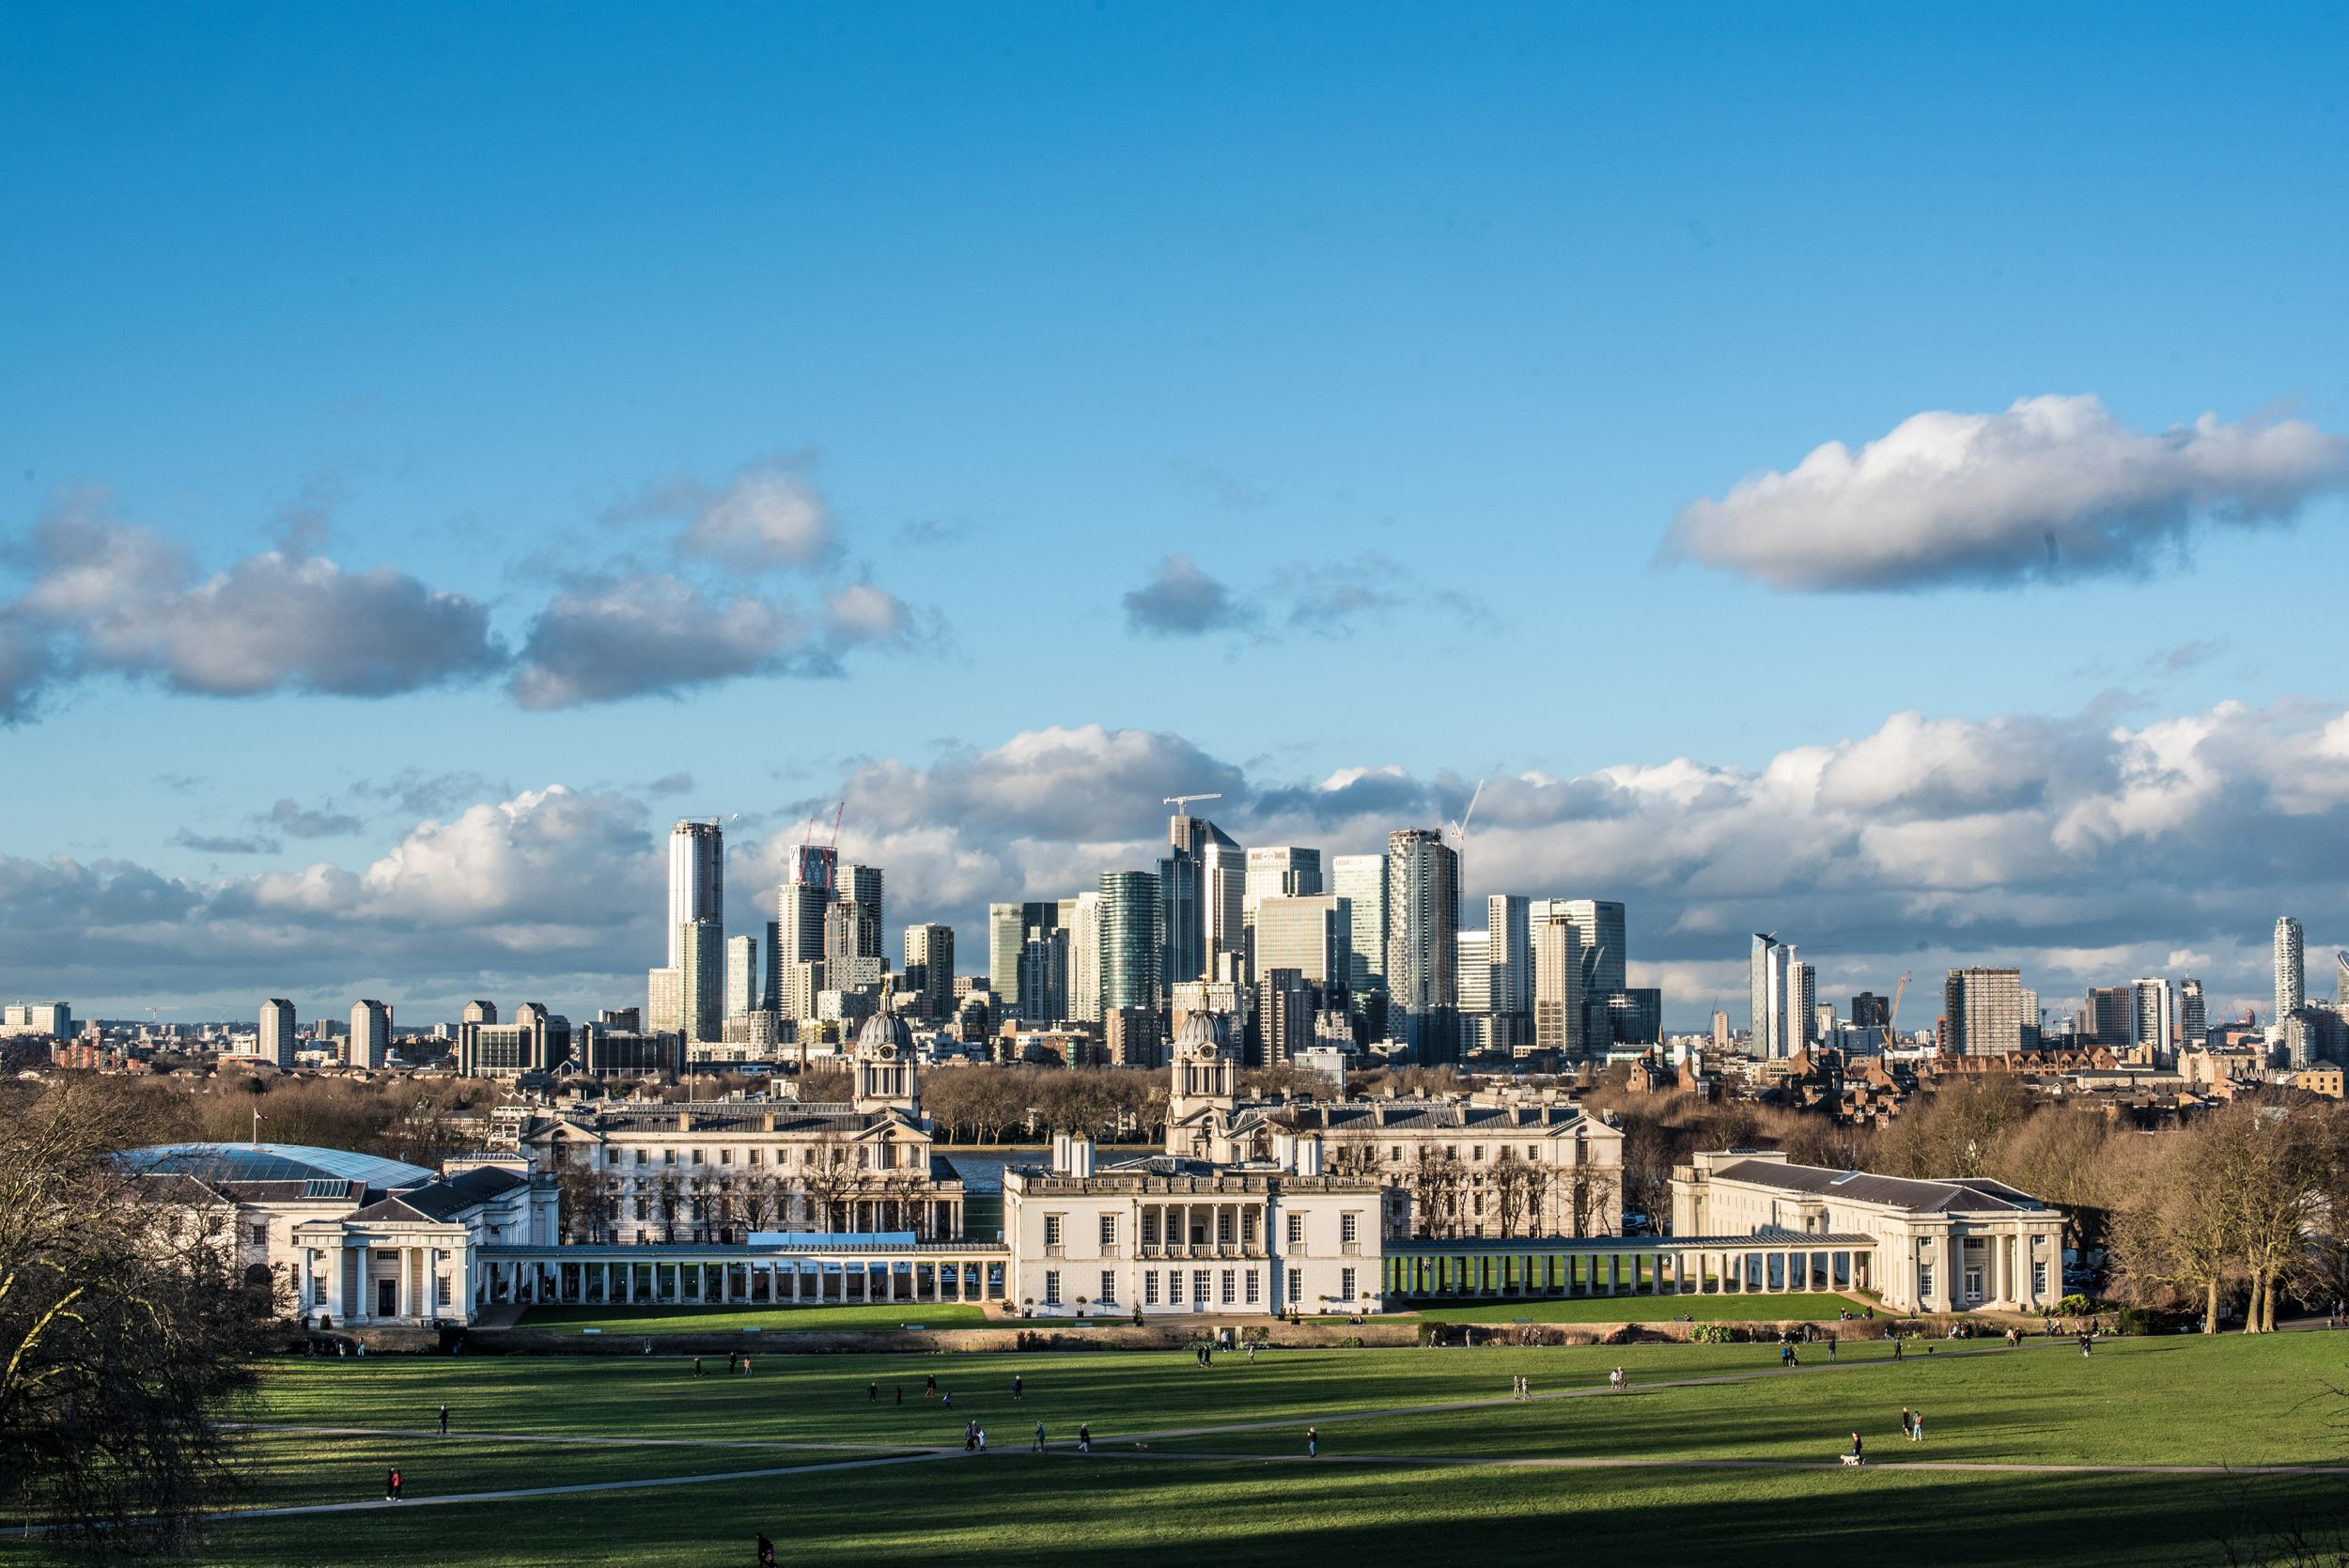 The city of London view from Greenwich